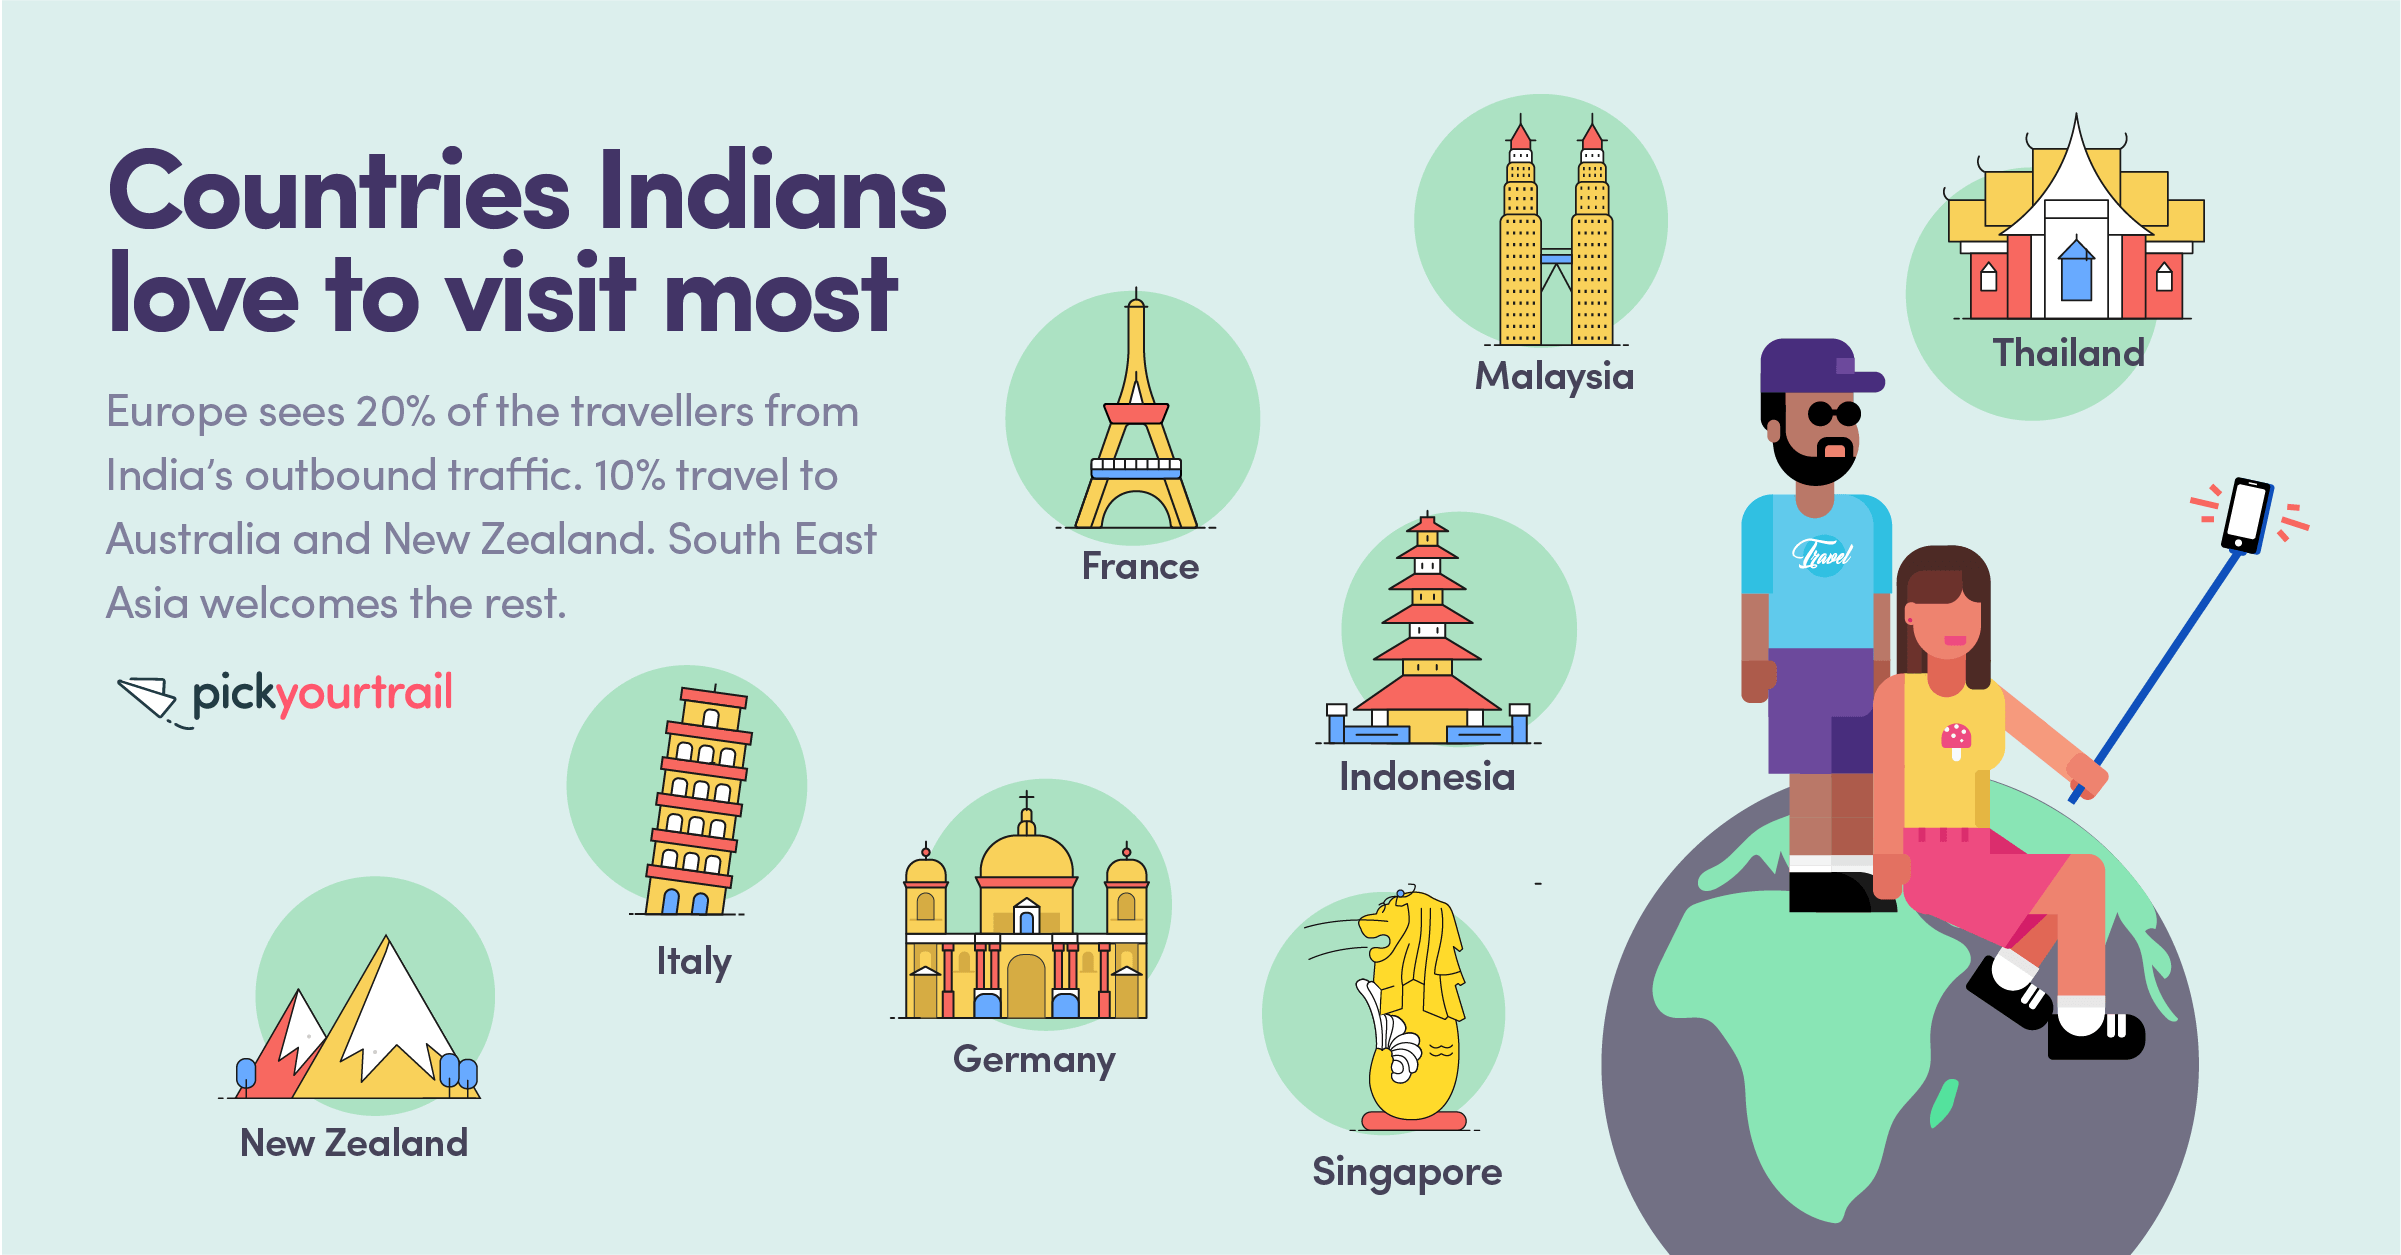 S.E Asia is a hot favourite with Indian travellers. Europe, New Zealand and Australia are popular destinations too.